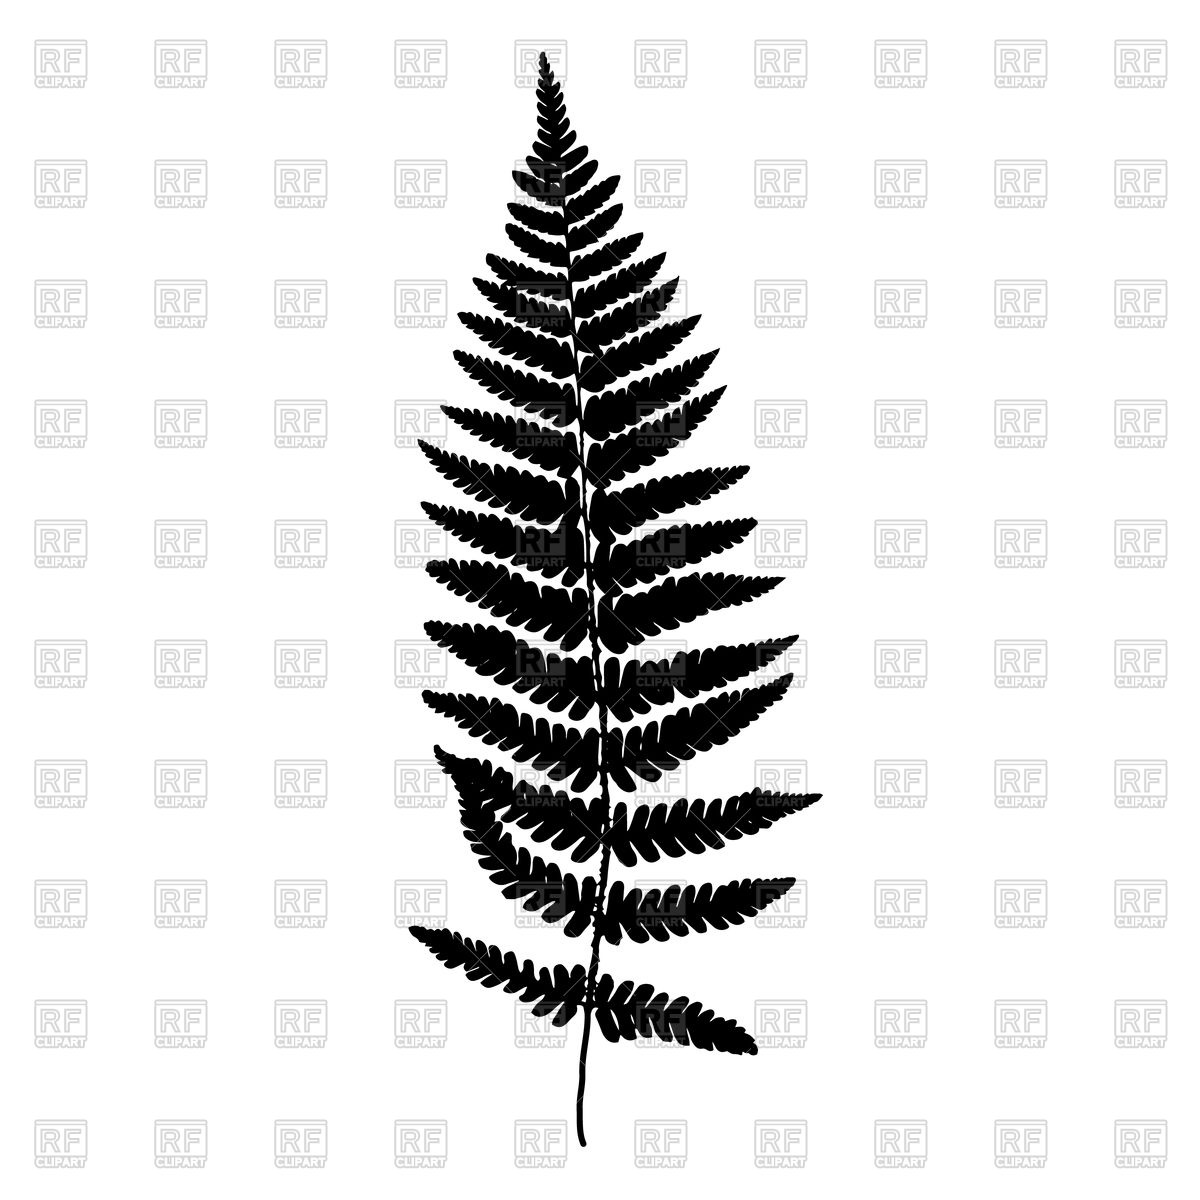 1200x1200 Fern Leaf Vector Image Vector Artwork Of Plants And Animals